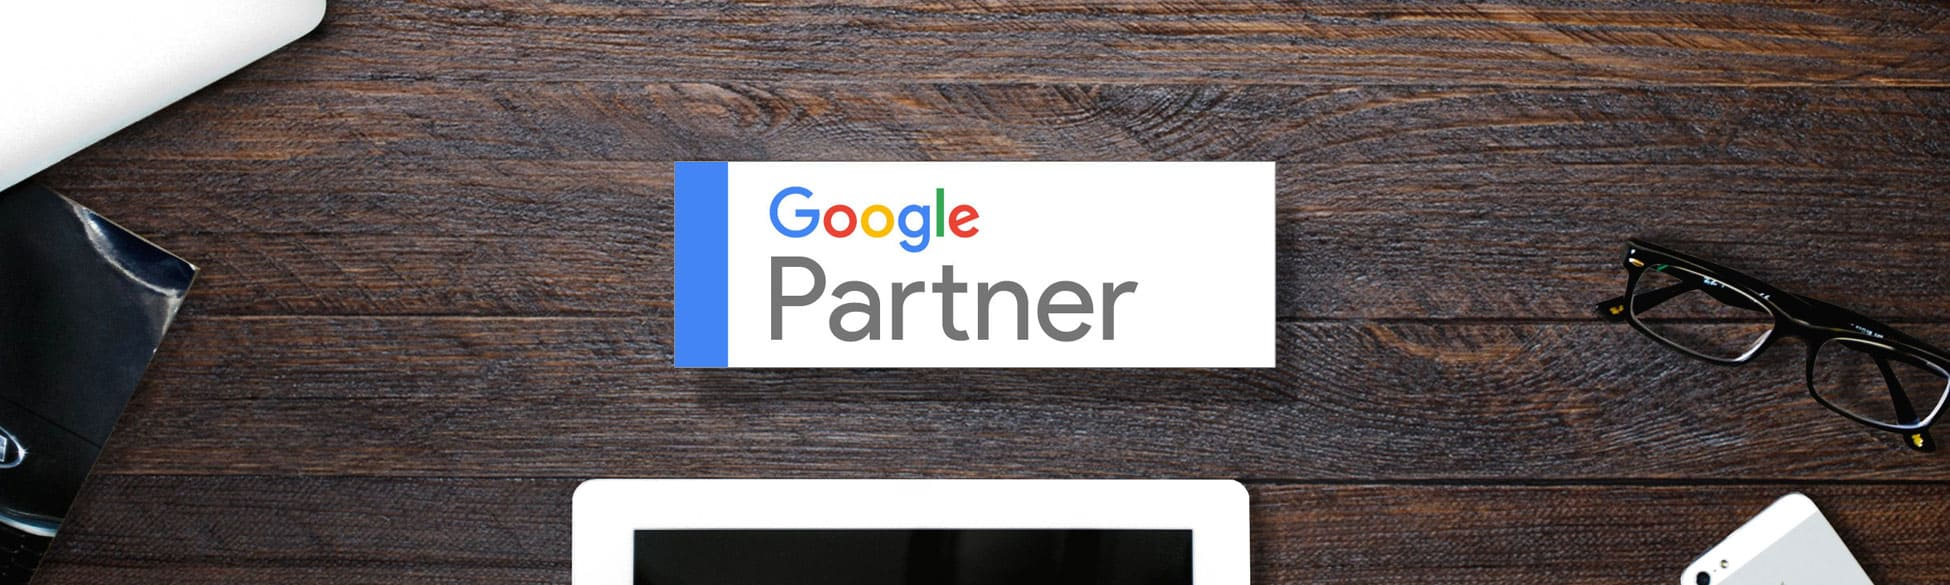 google partner point break agentur